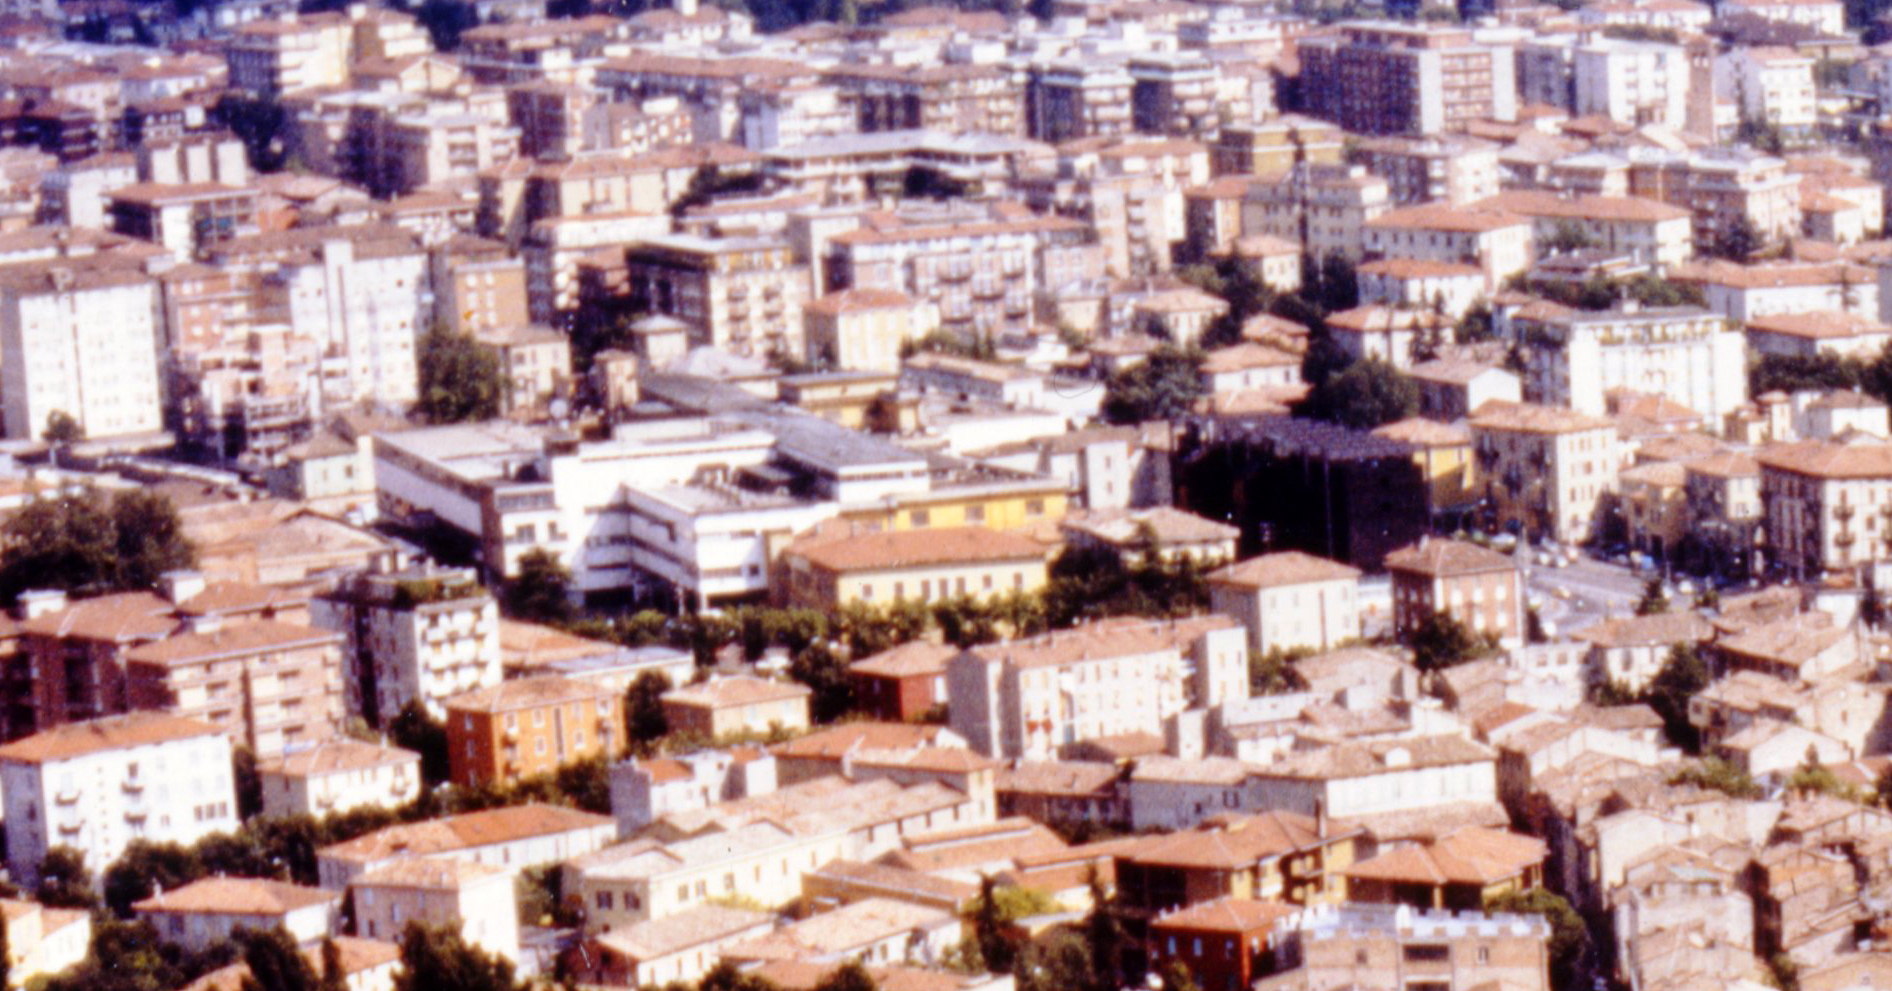 Aerial view facing South-West of the suburbian neighborhoods of the city of Parma with the Barilla plant in the center.